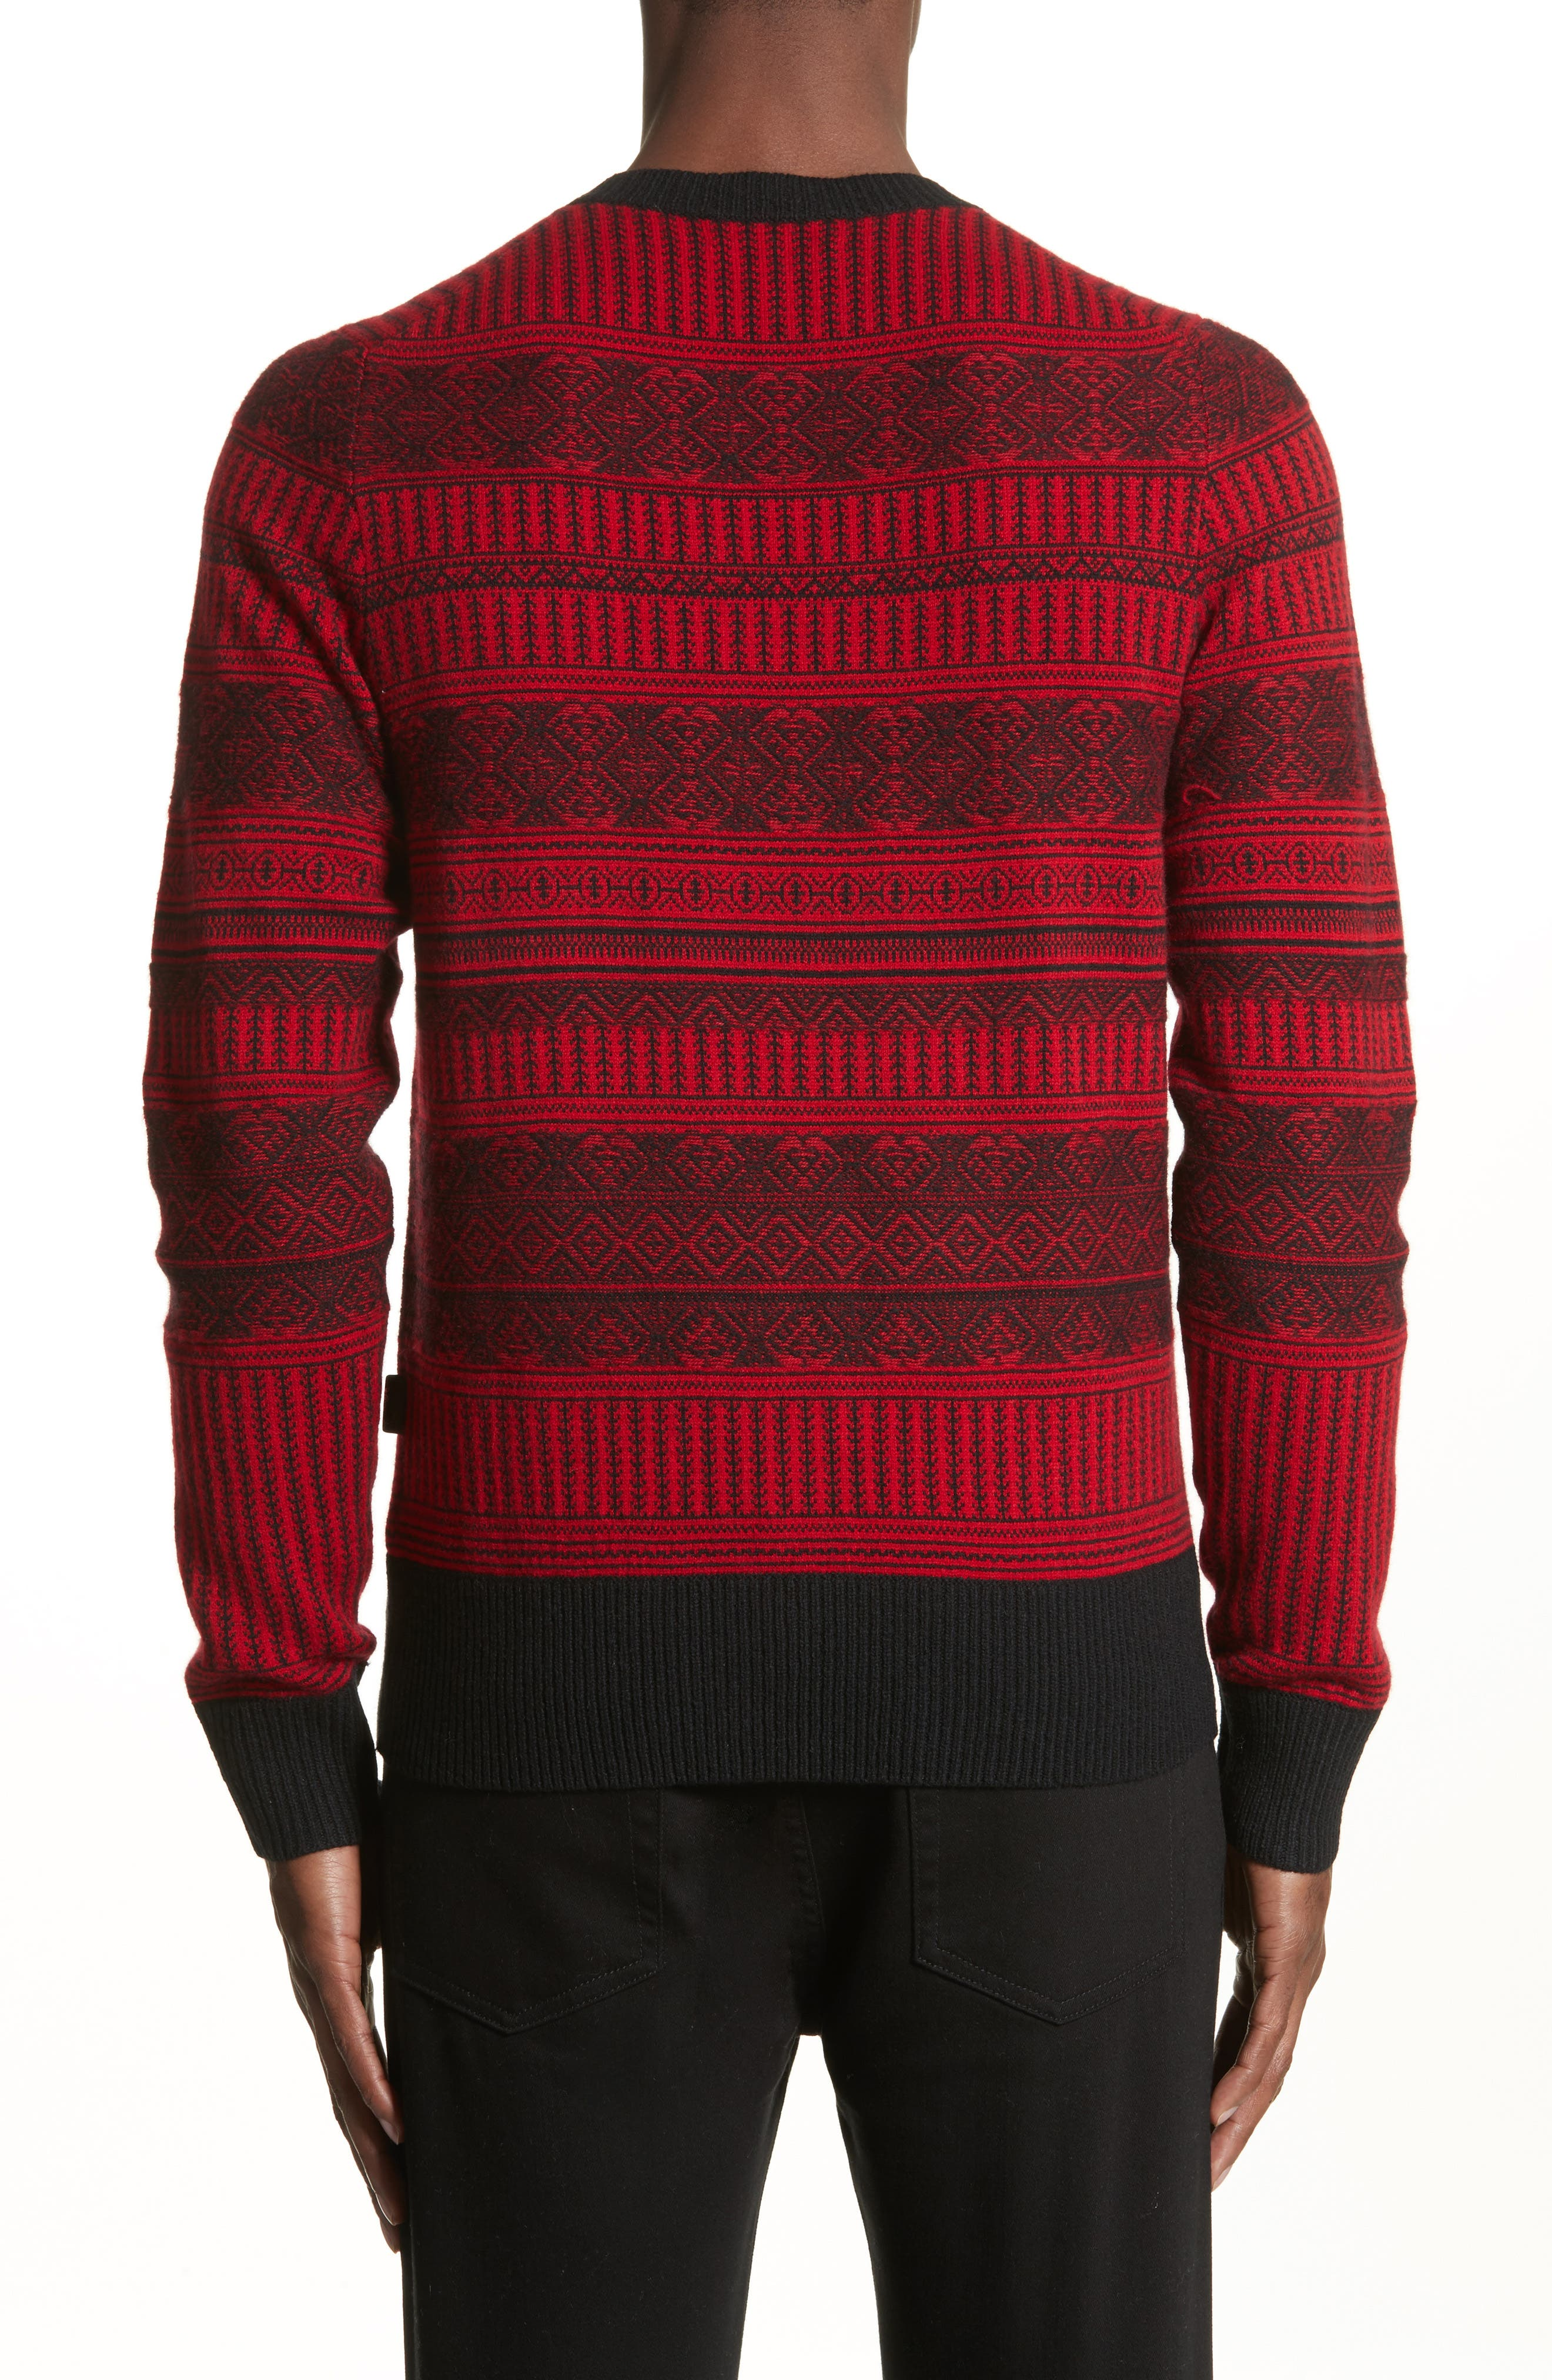 Tredway Wool & Cashmere Sweater,                             Alternate thumbnail 2, color,                             Military Red